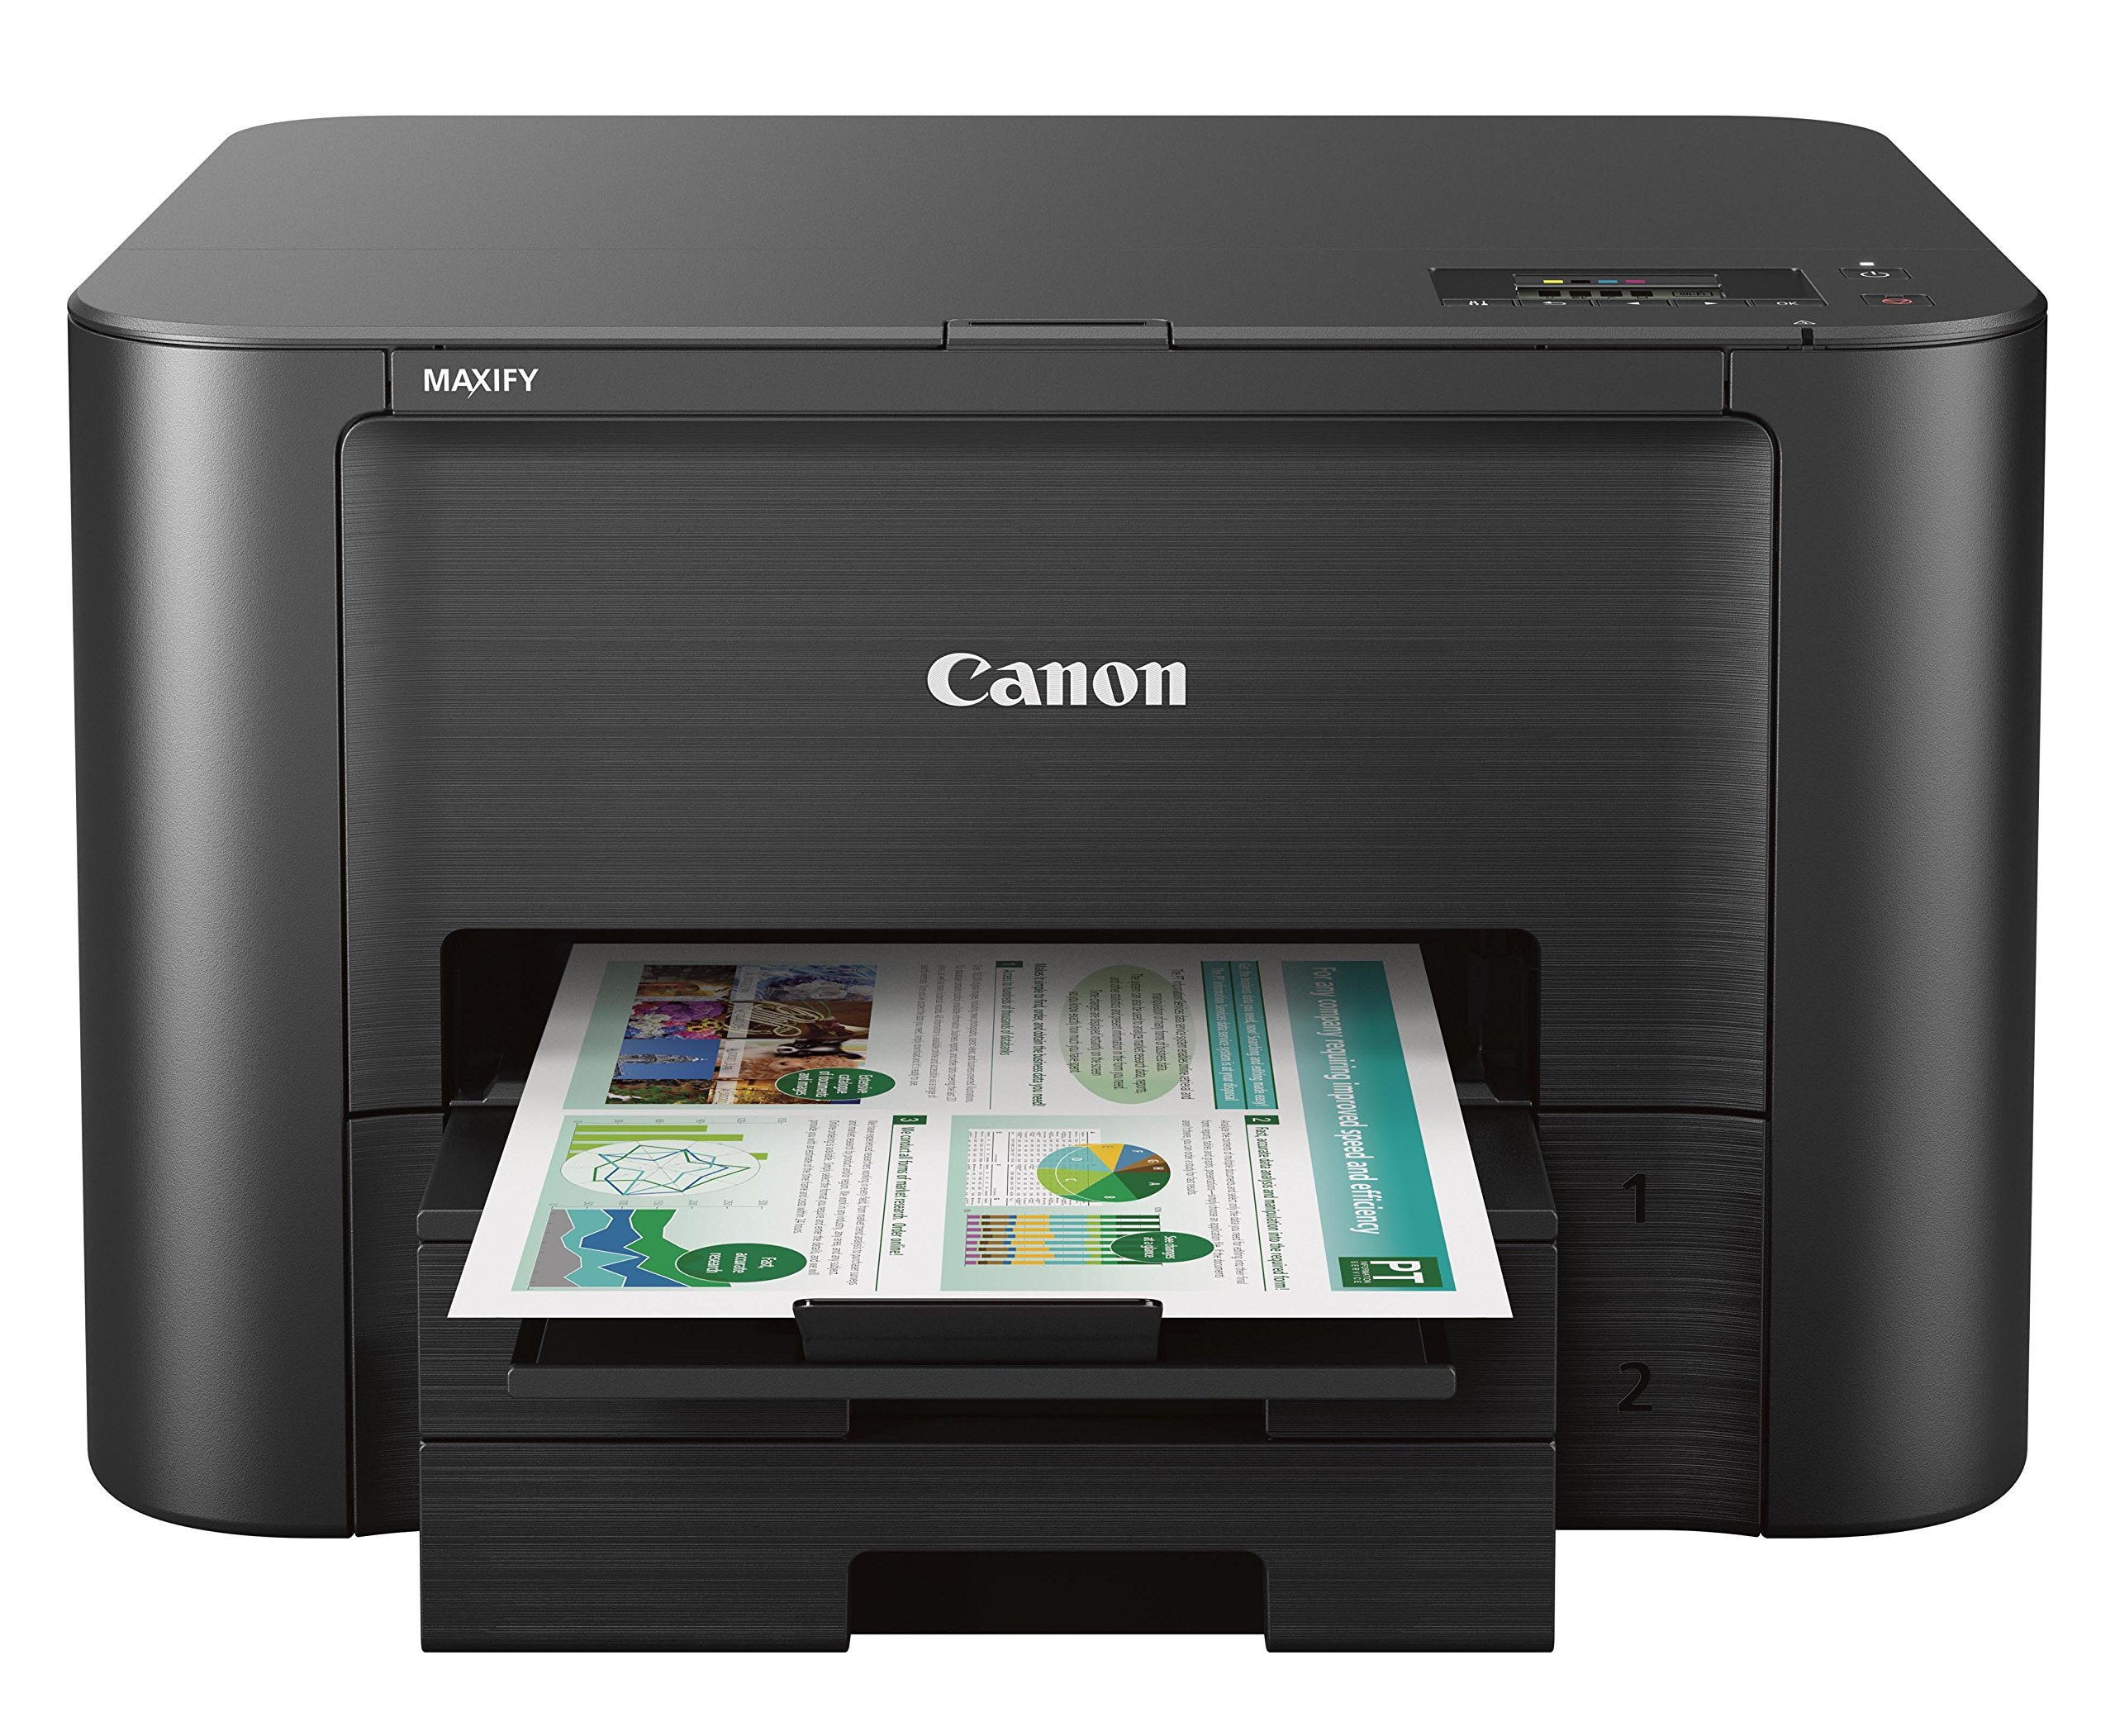 Canon Inkjet PIXUS 850i Printer Windows 8 X64